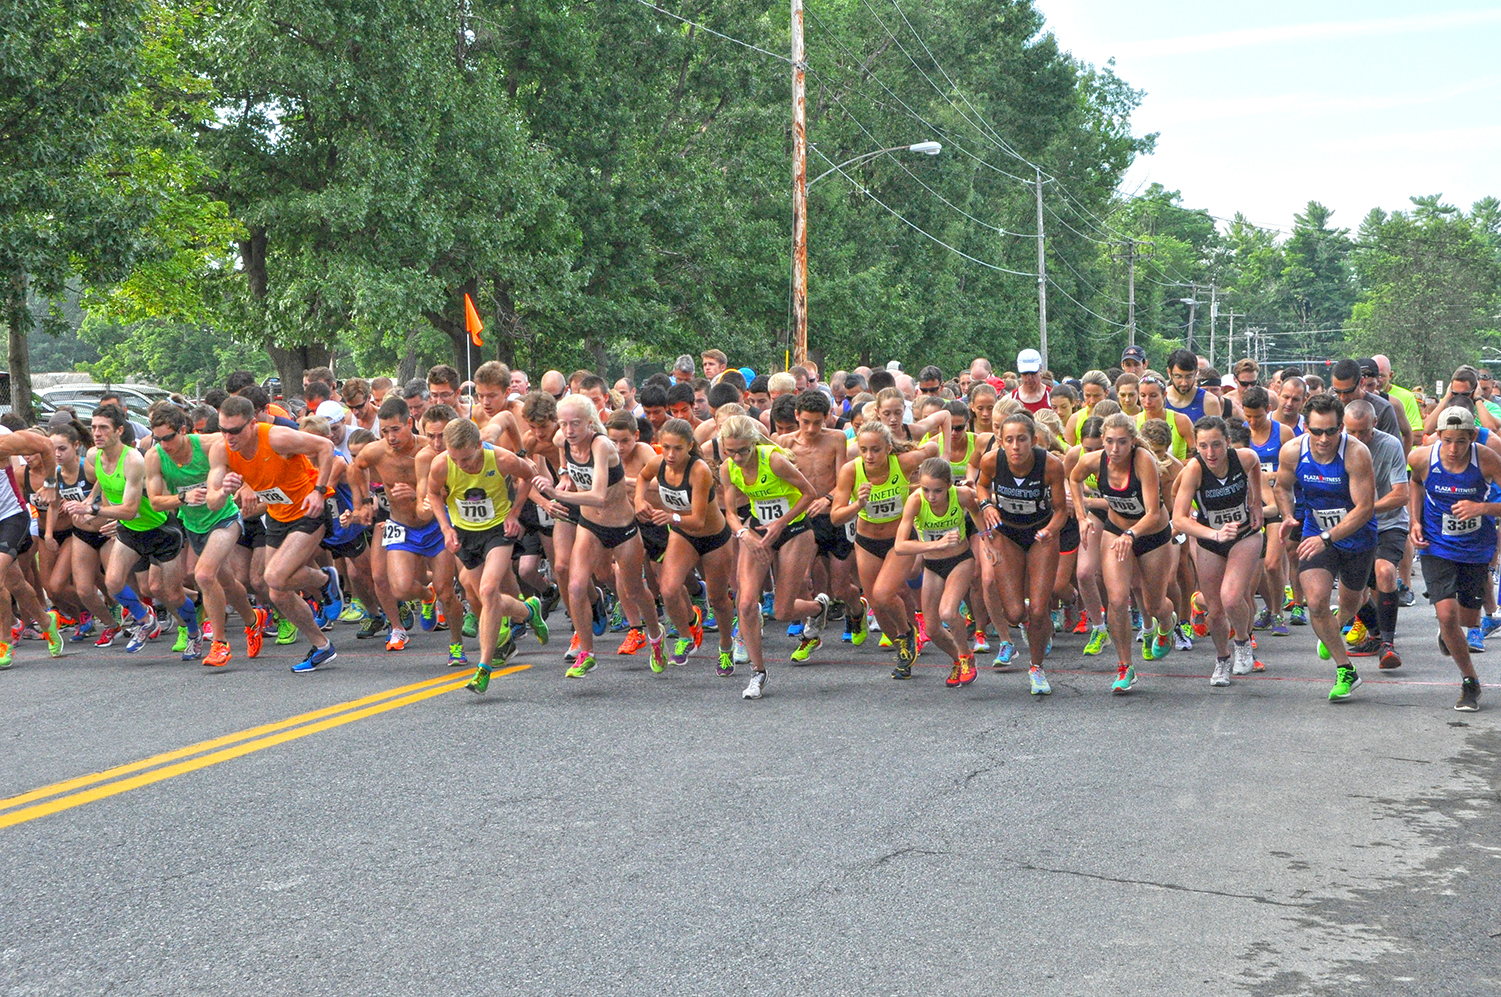 And they're off! Runners begin the  2015 Silks & Satins 5K , a fast and flat course through the East Side neighbor-hood of Saratoga Springs.  Gail Stein